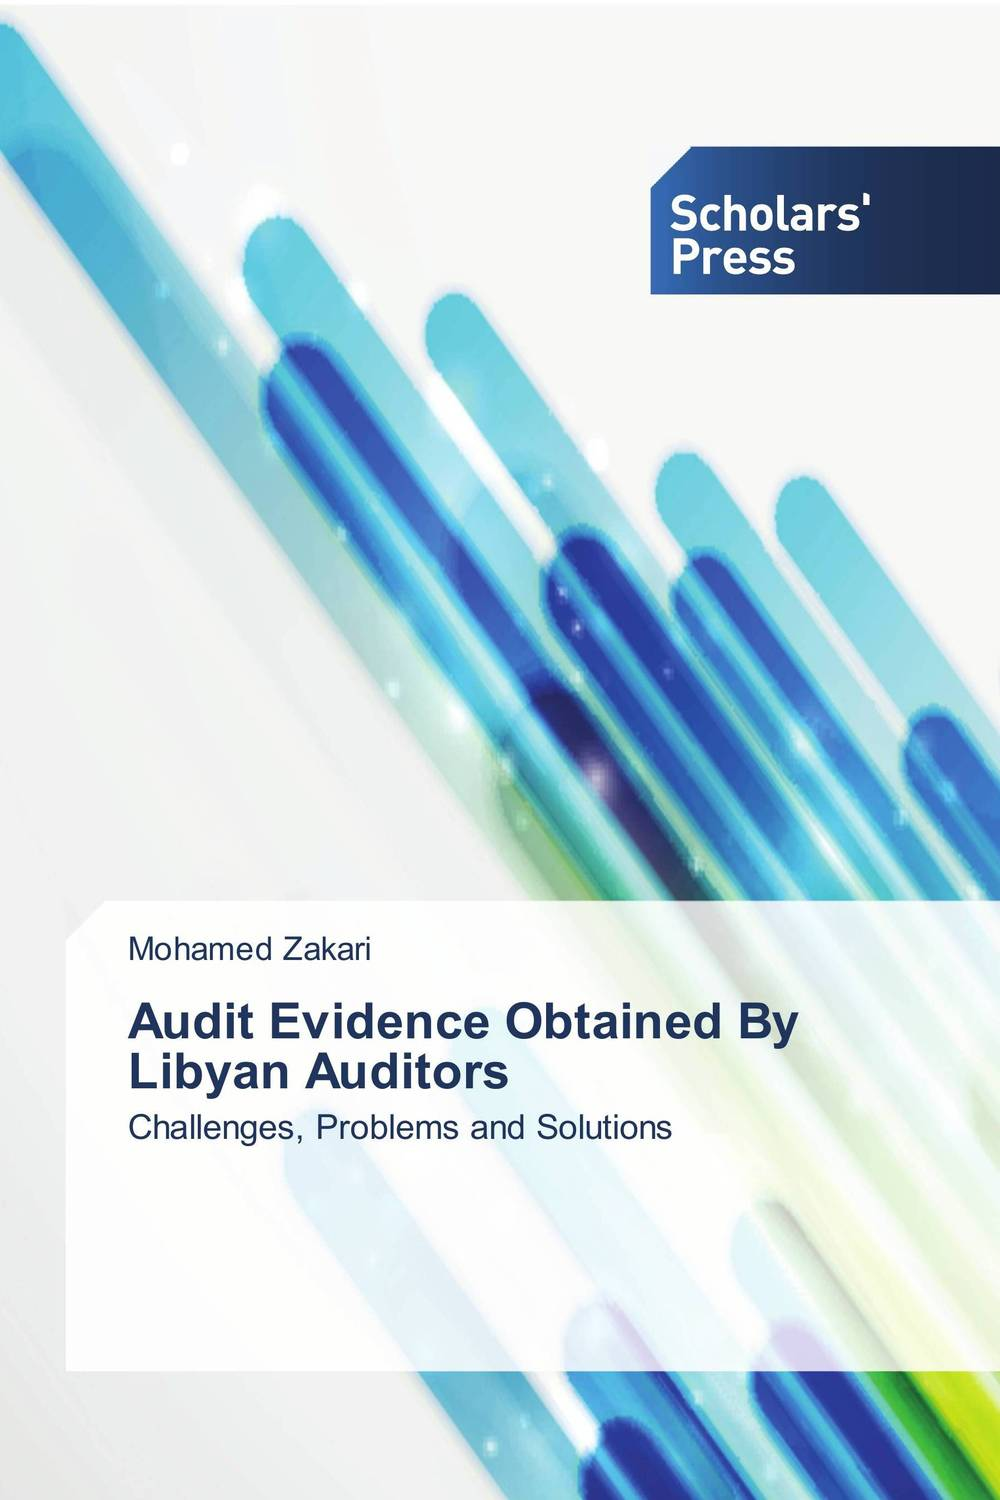 Audit Evidence Obtained By Libyan Auditors presidential nominee will address a gathering